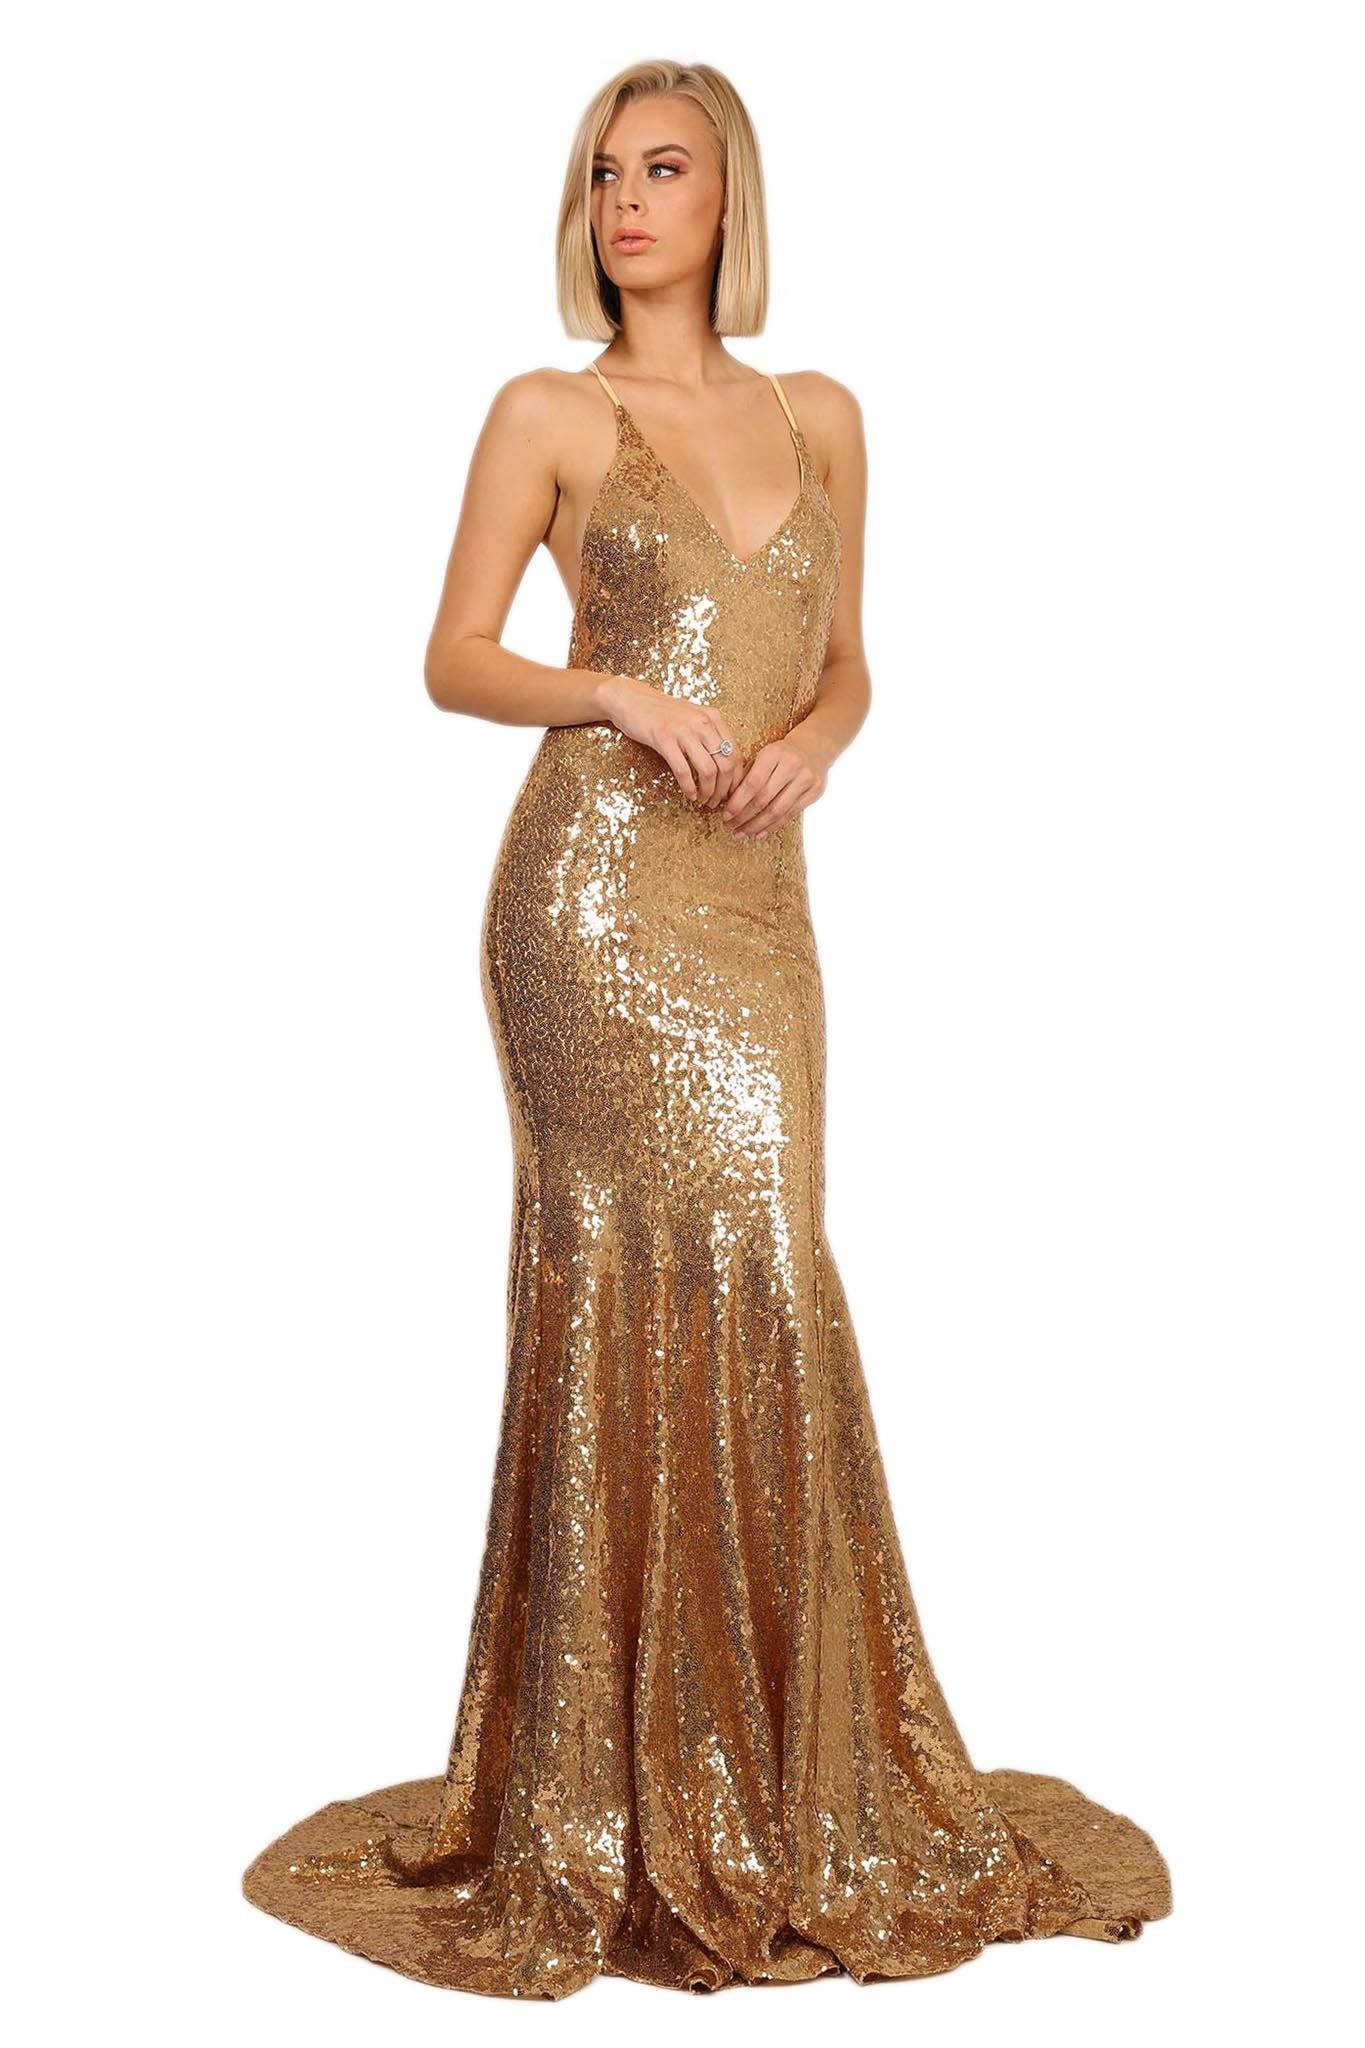 Estelle Gown - Gold – Noodz Boutique